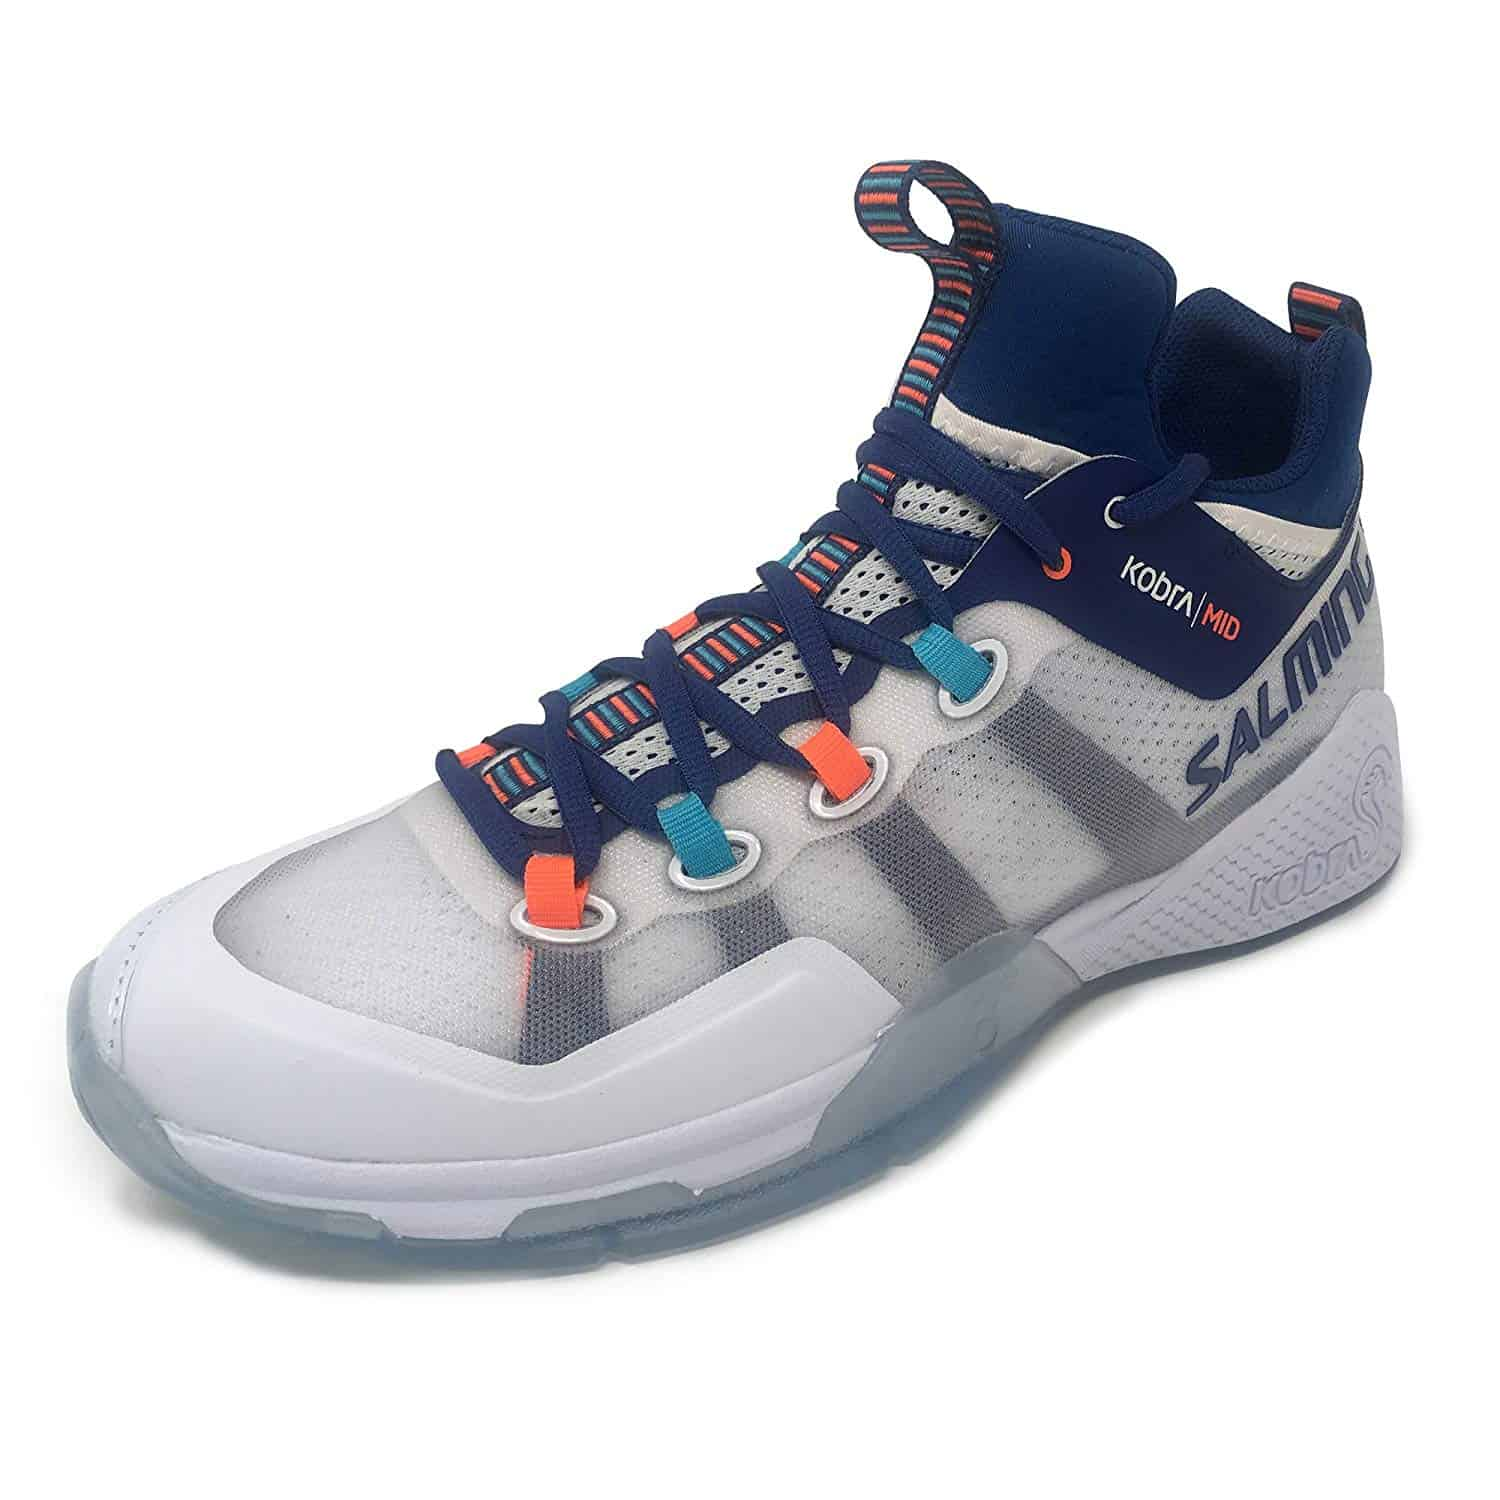 Salming Kobra mid squash shoes